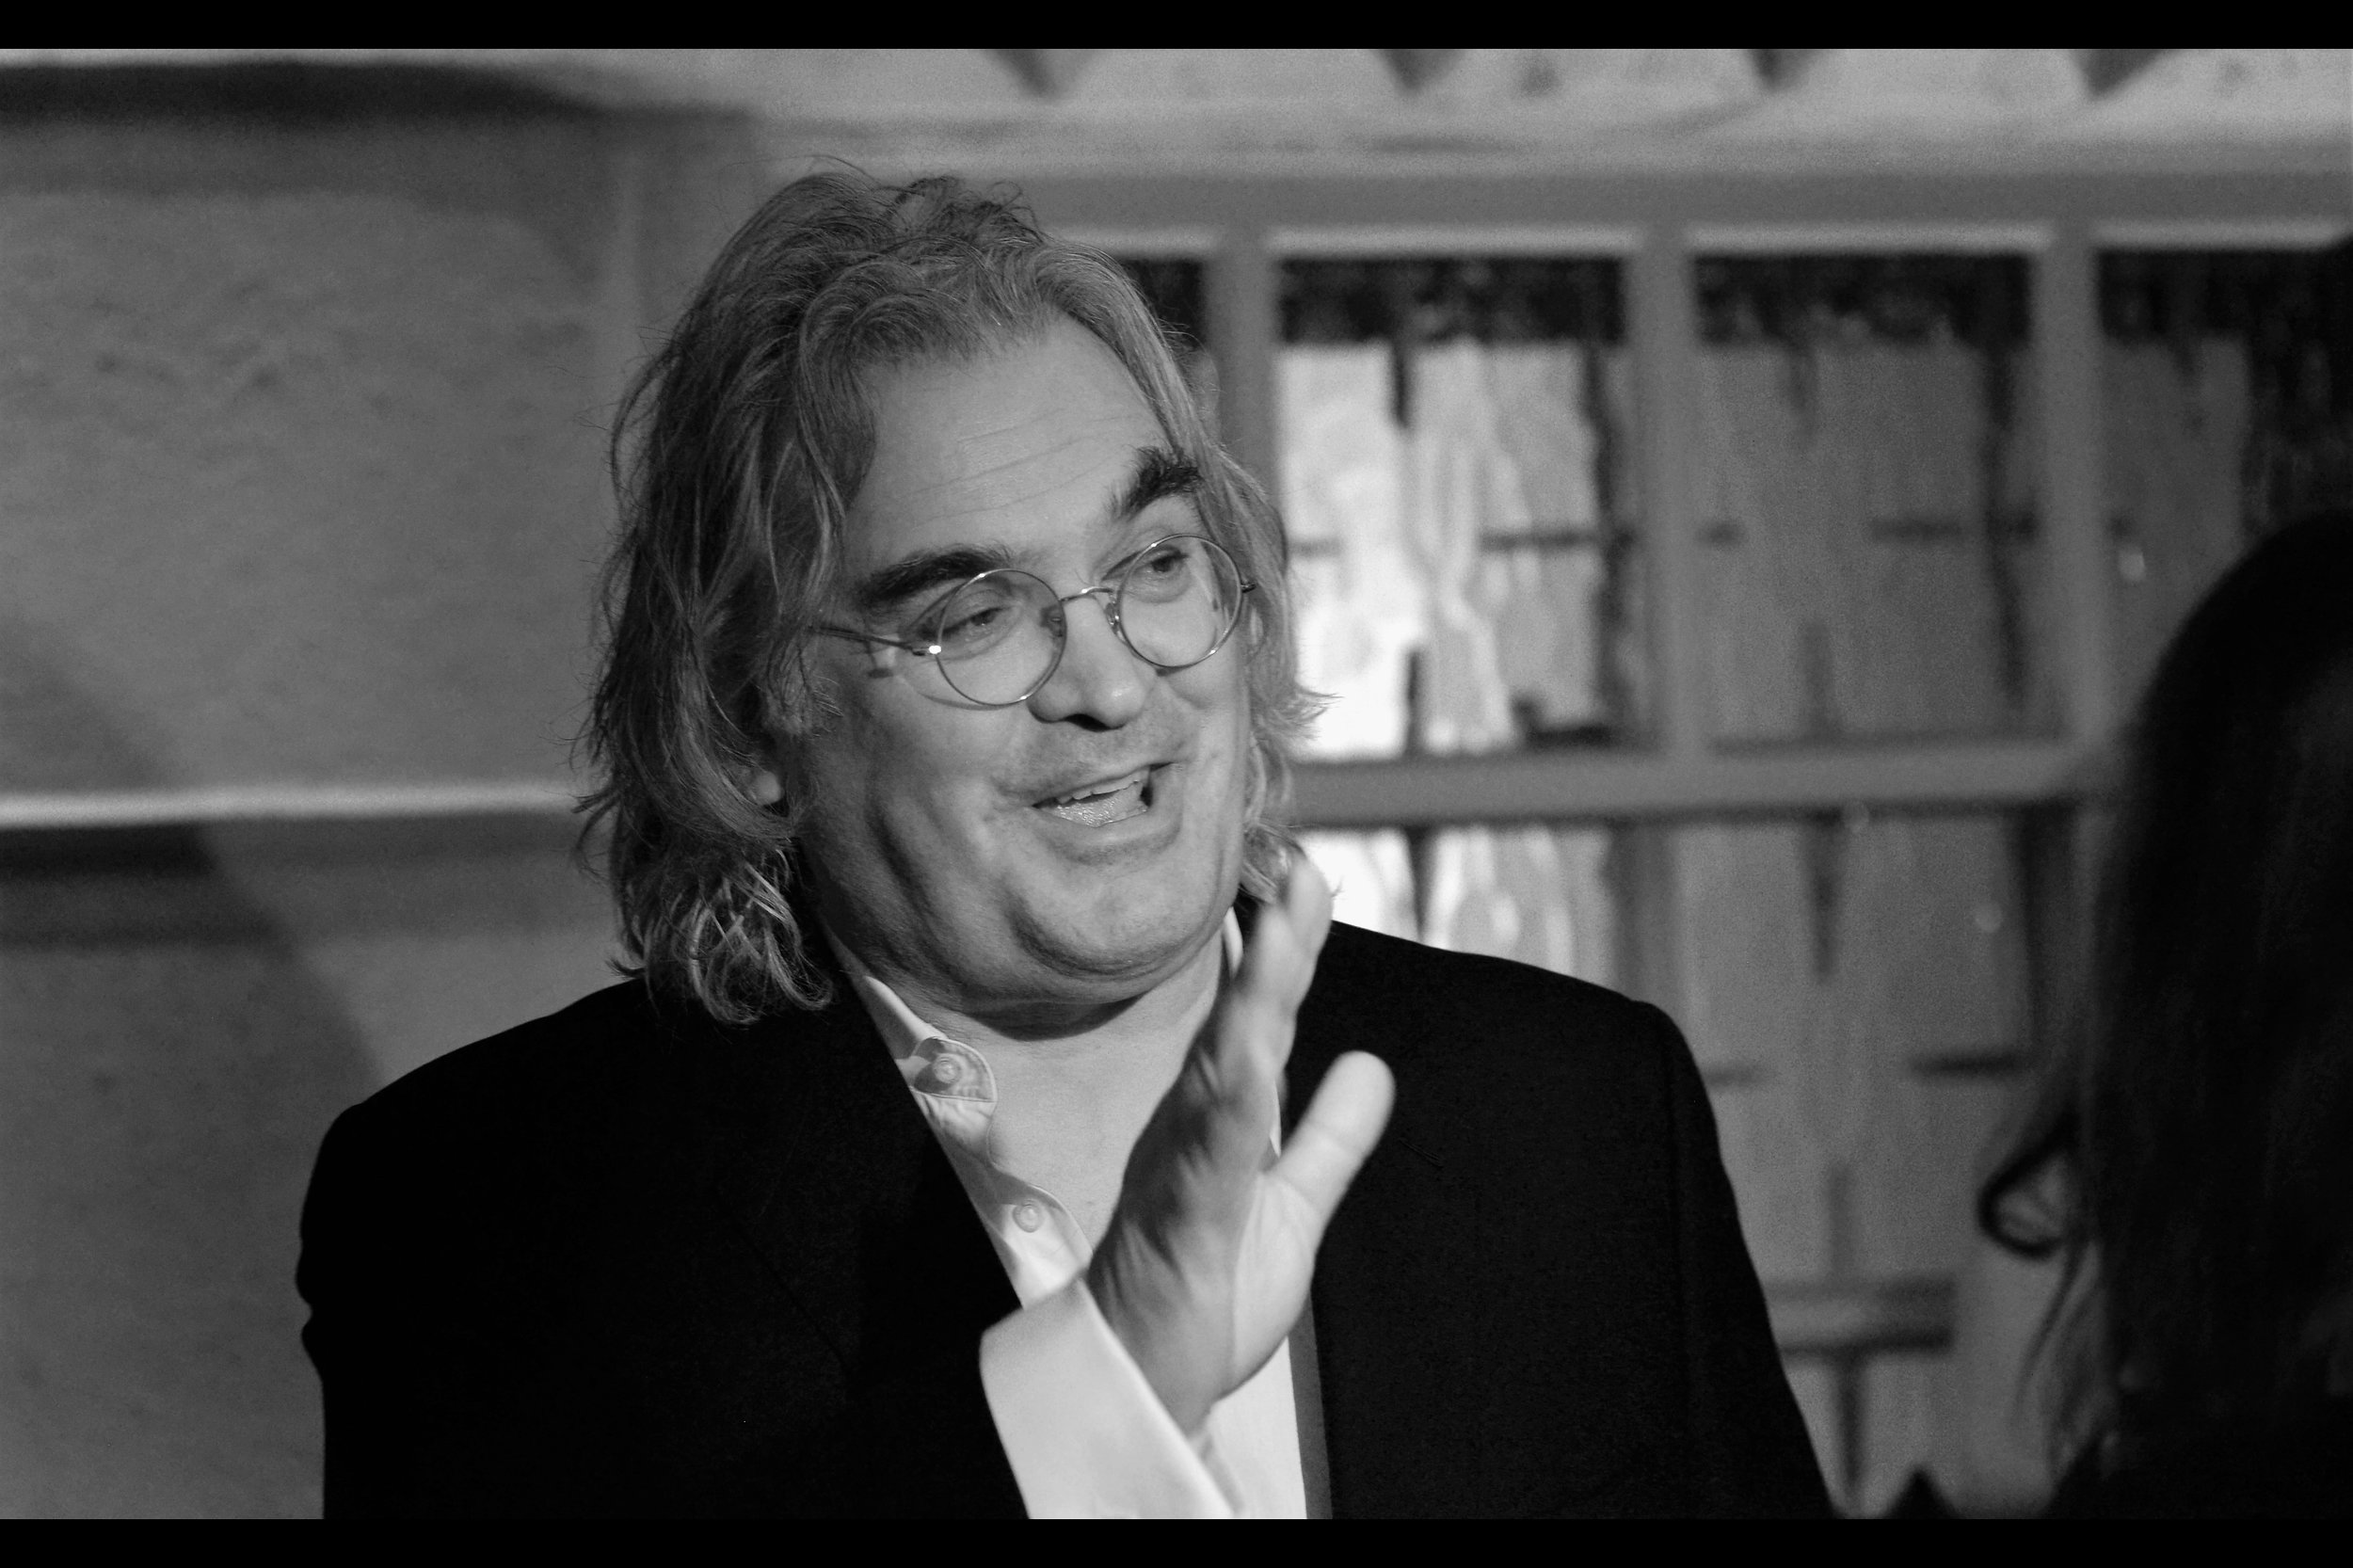 As at 22:44 on the evening of the awards, I am not yet aware of who won it/them. However, it was known in advance that Director Paul Greengrass would be awarded a BFI Fellowship on the night. And if even I knew it despite my strong anti-spoiler status, he probably did too.